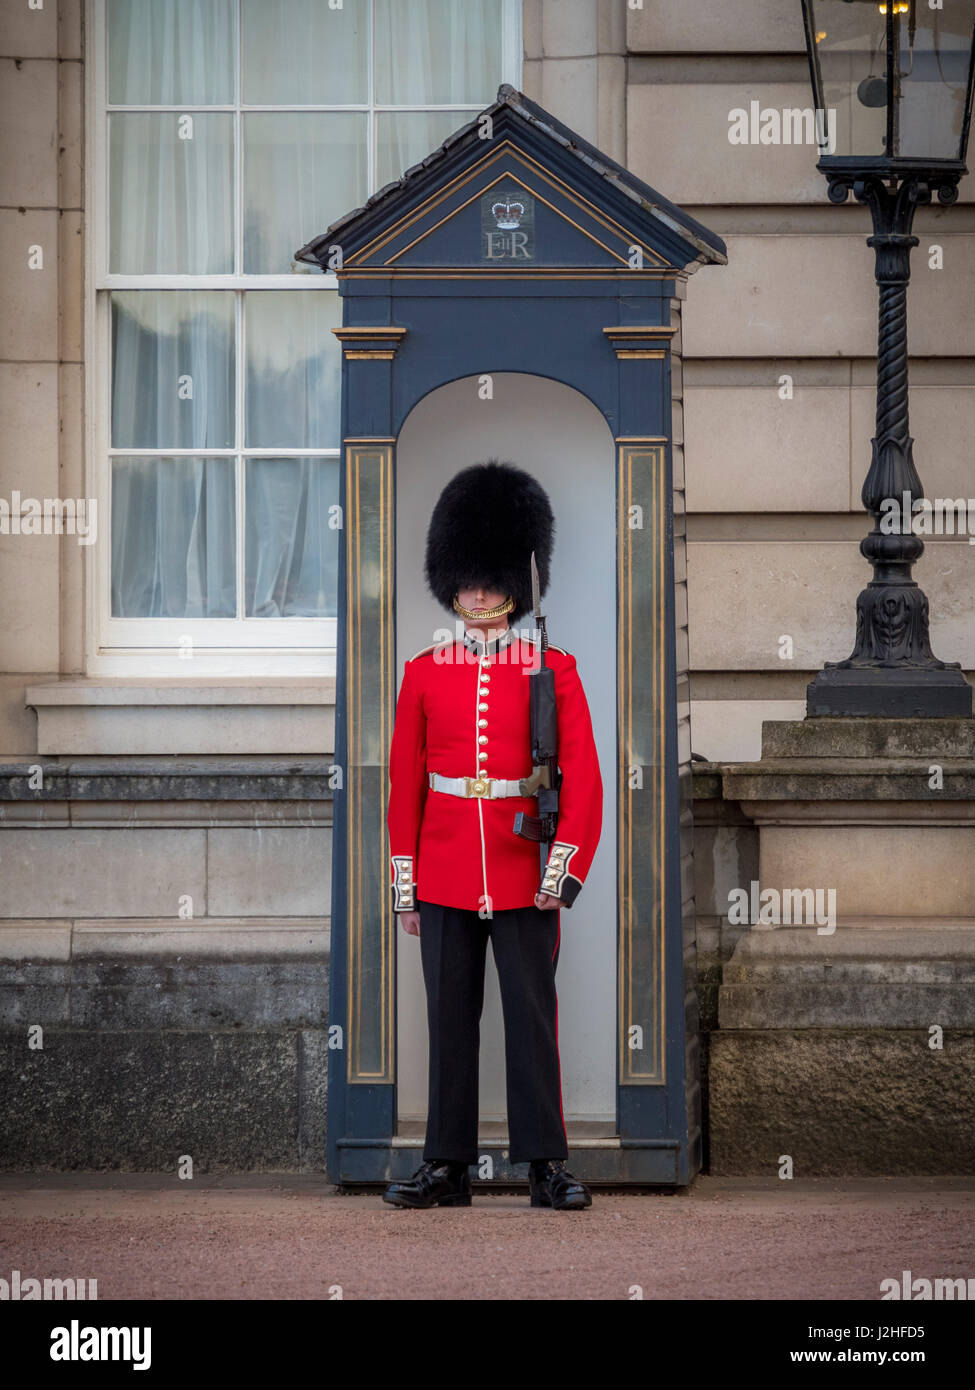 Sentry of the Grenadier Guards posted outside Buckingham Palace, London, UK. - Stock Image